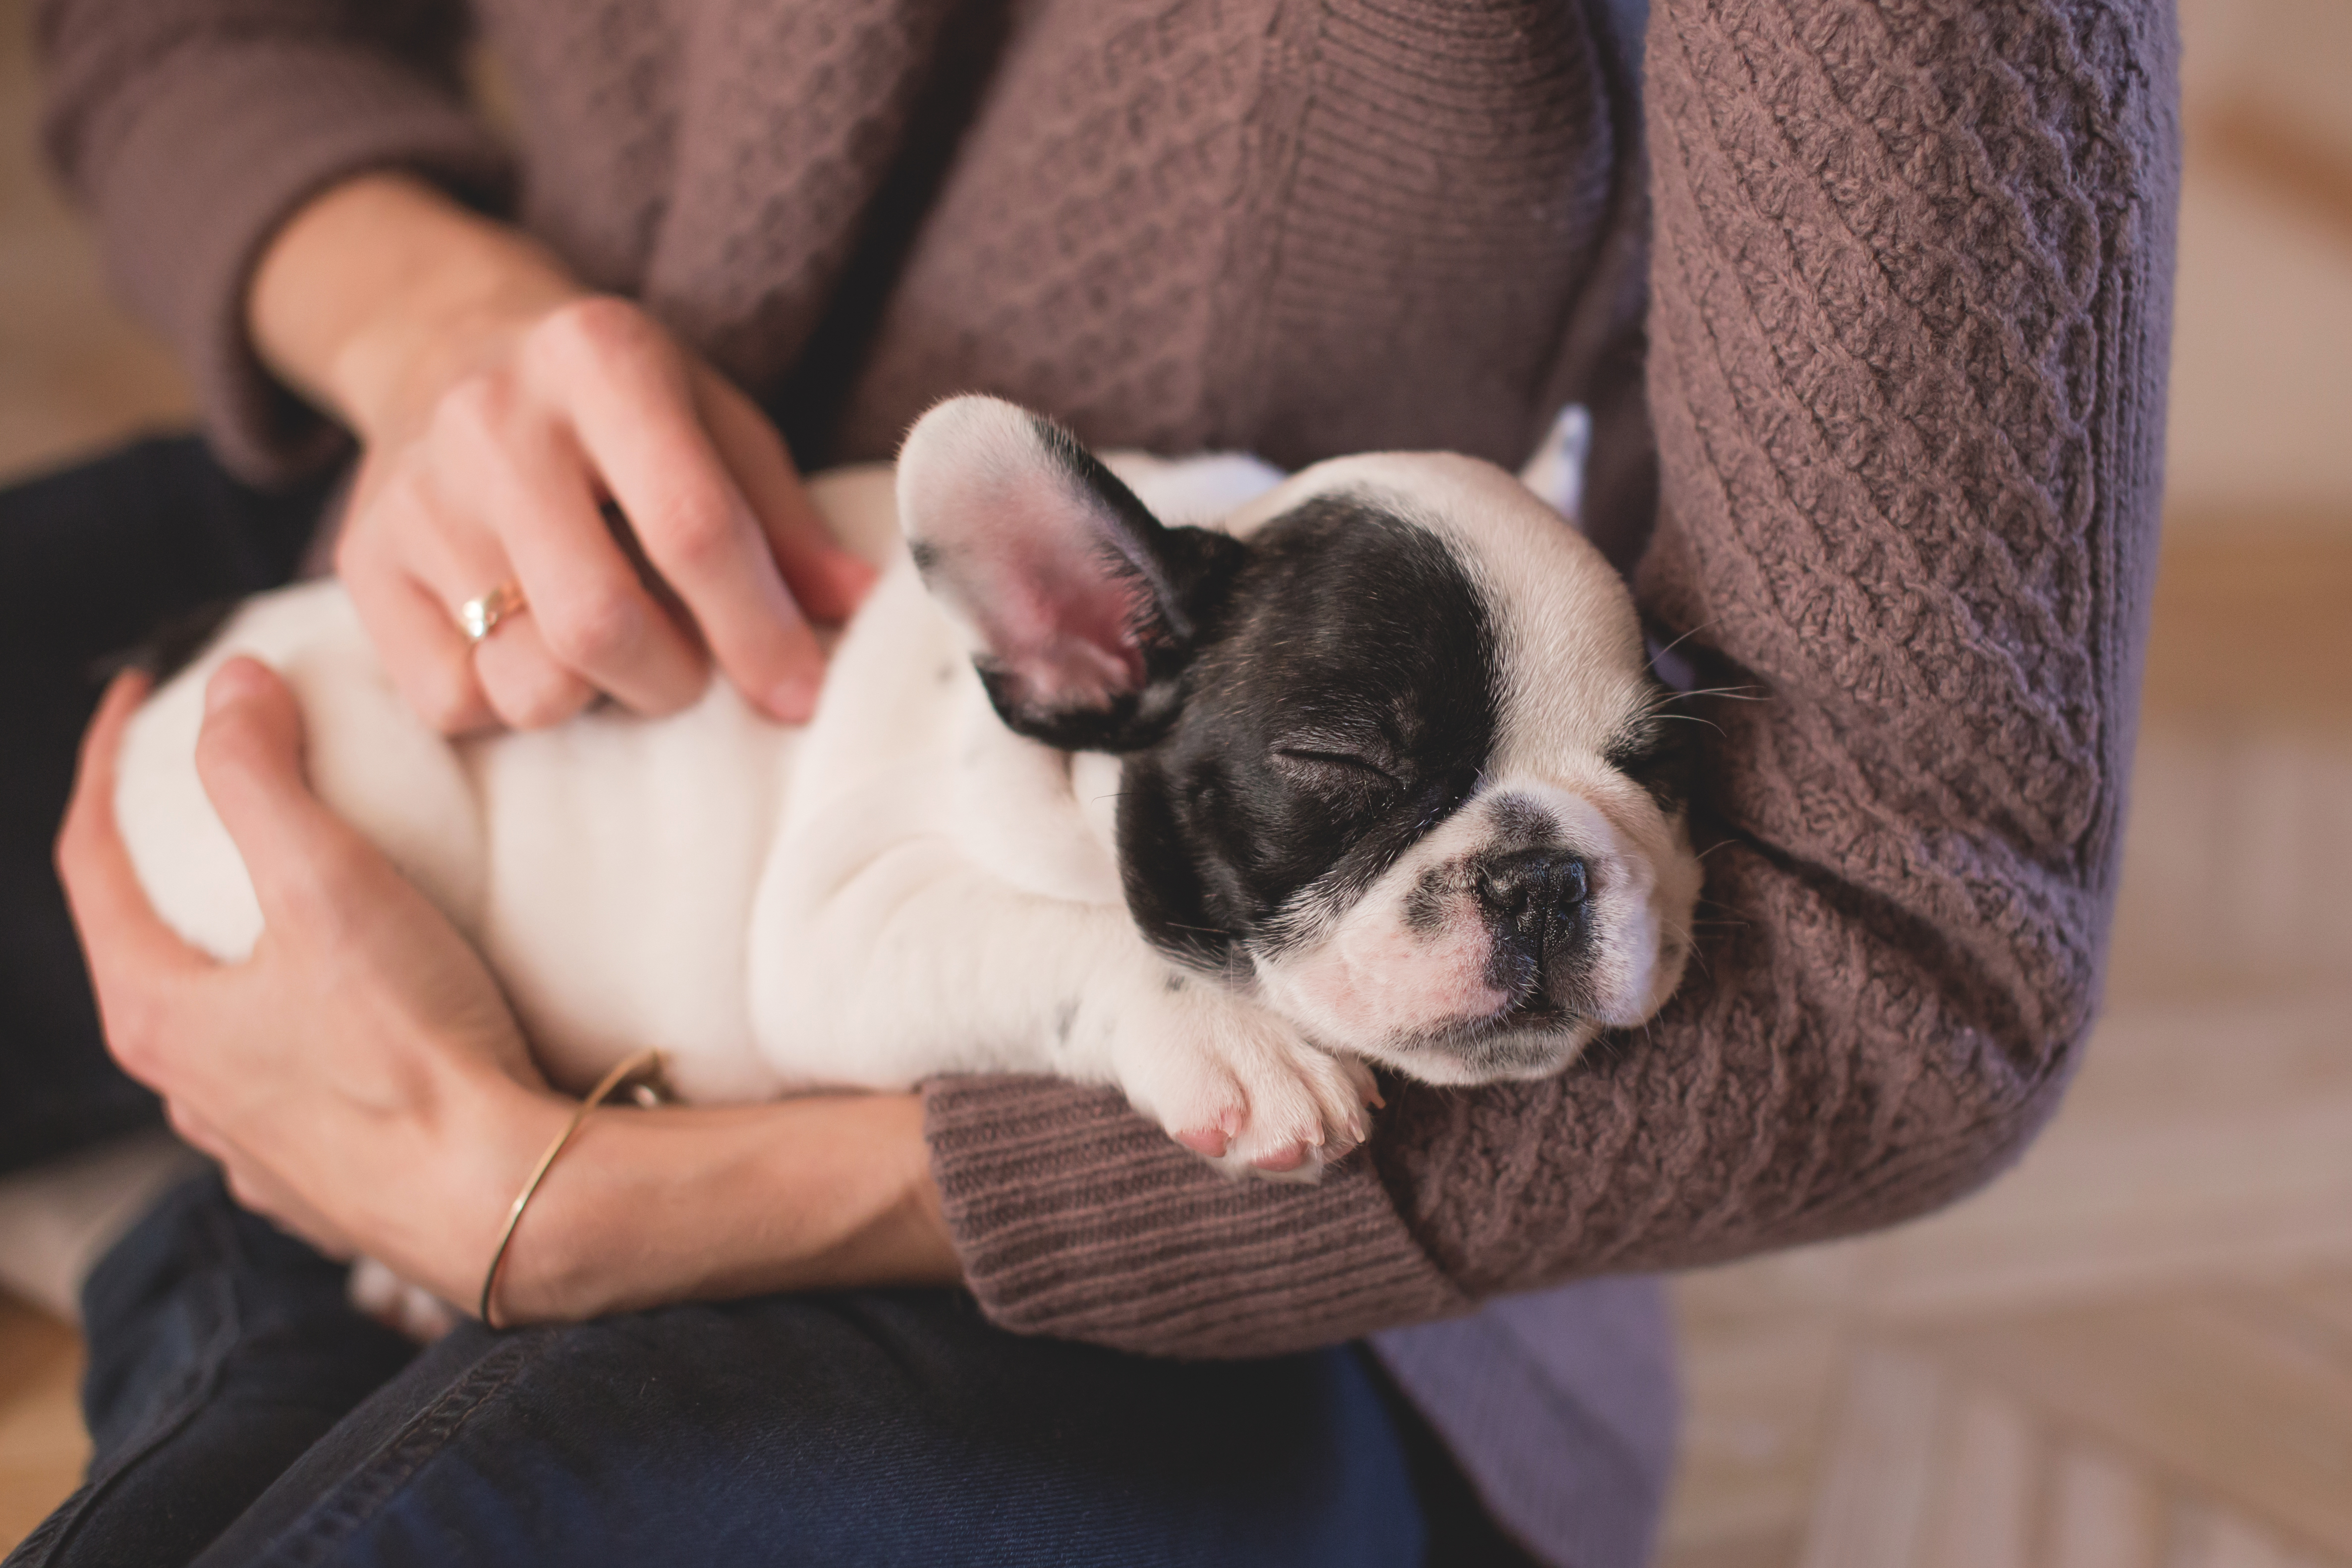 Woman with a puppy, Pup, Pet, Owner, Nap, HQ Photo